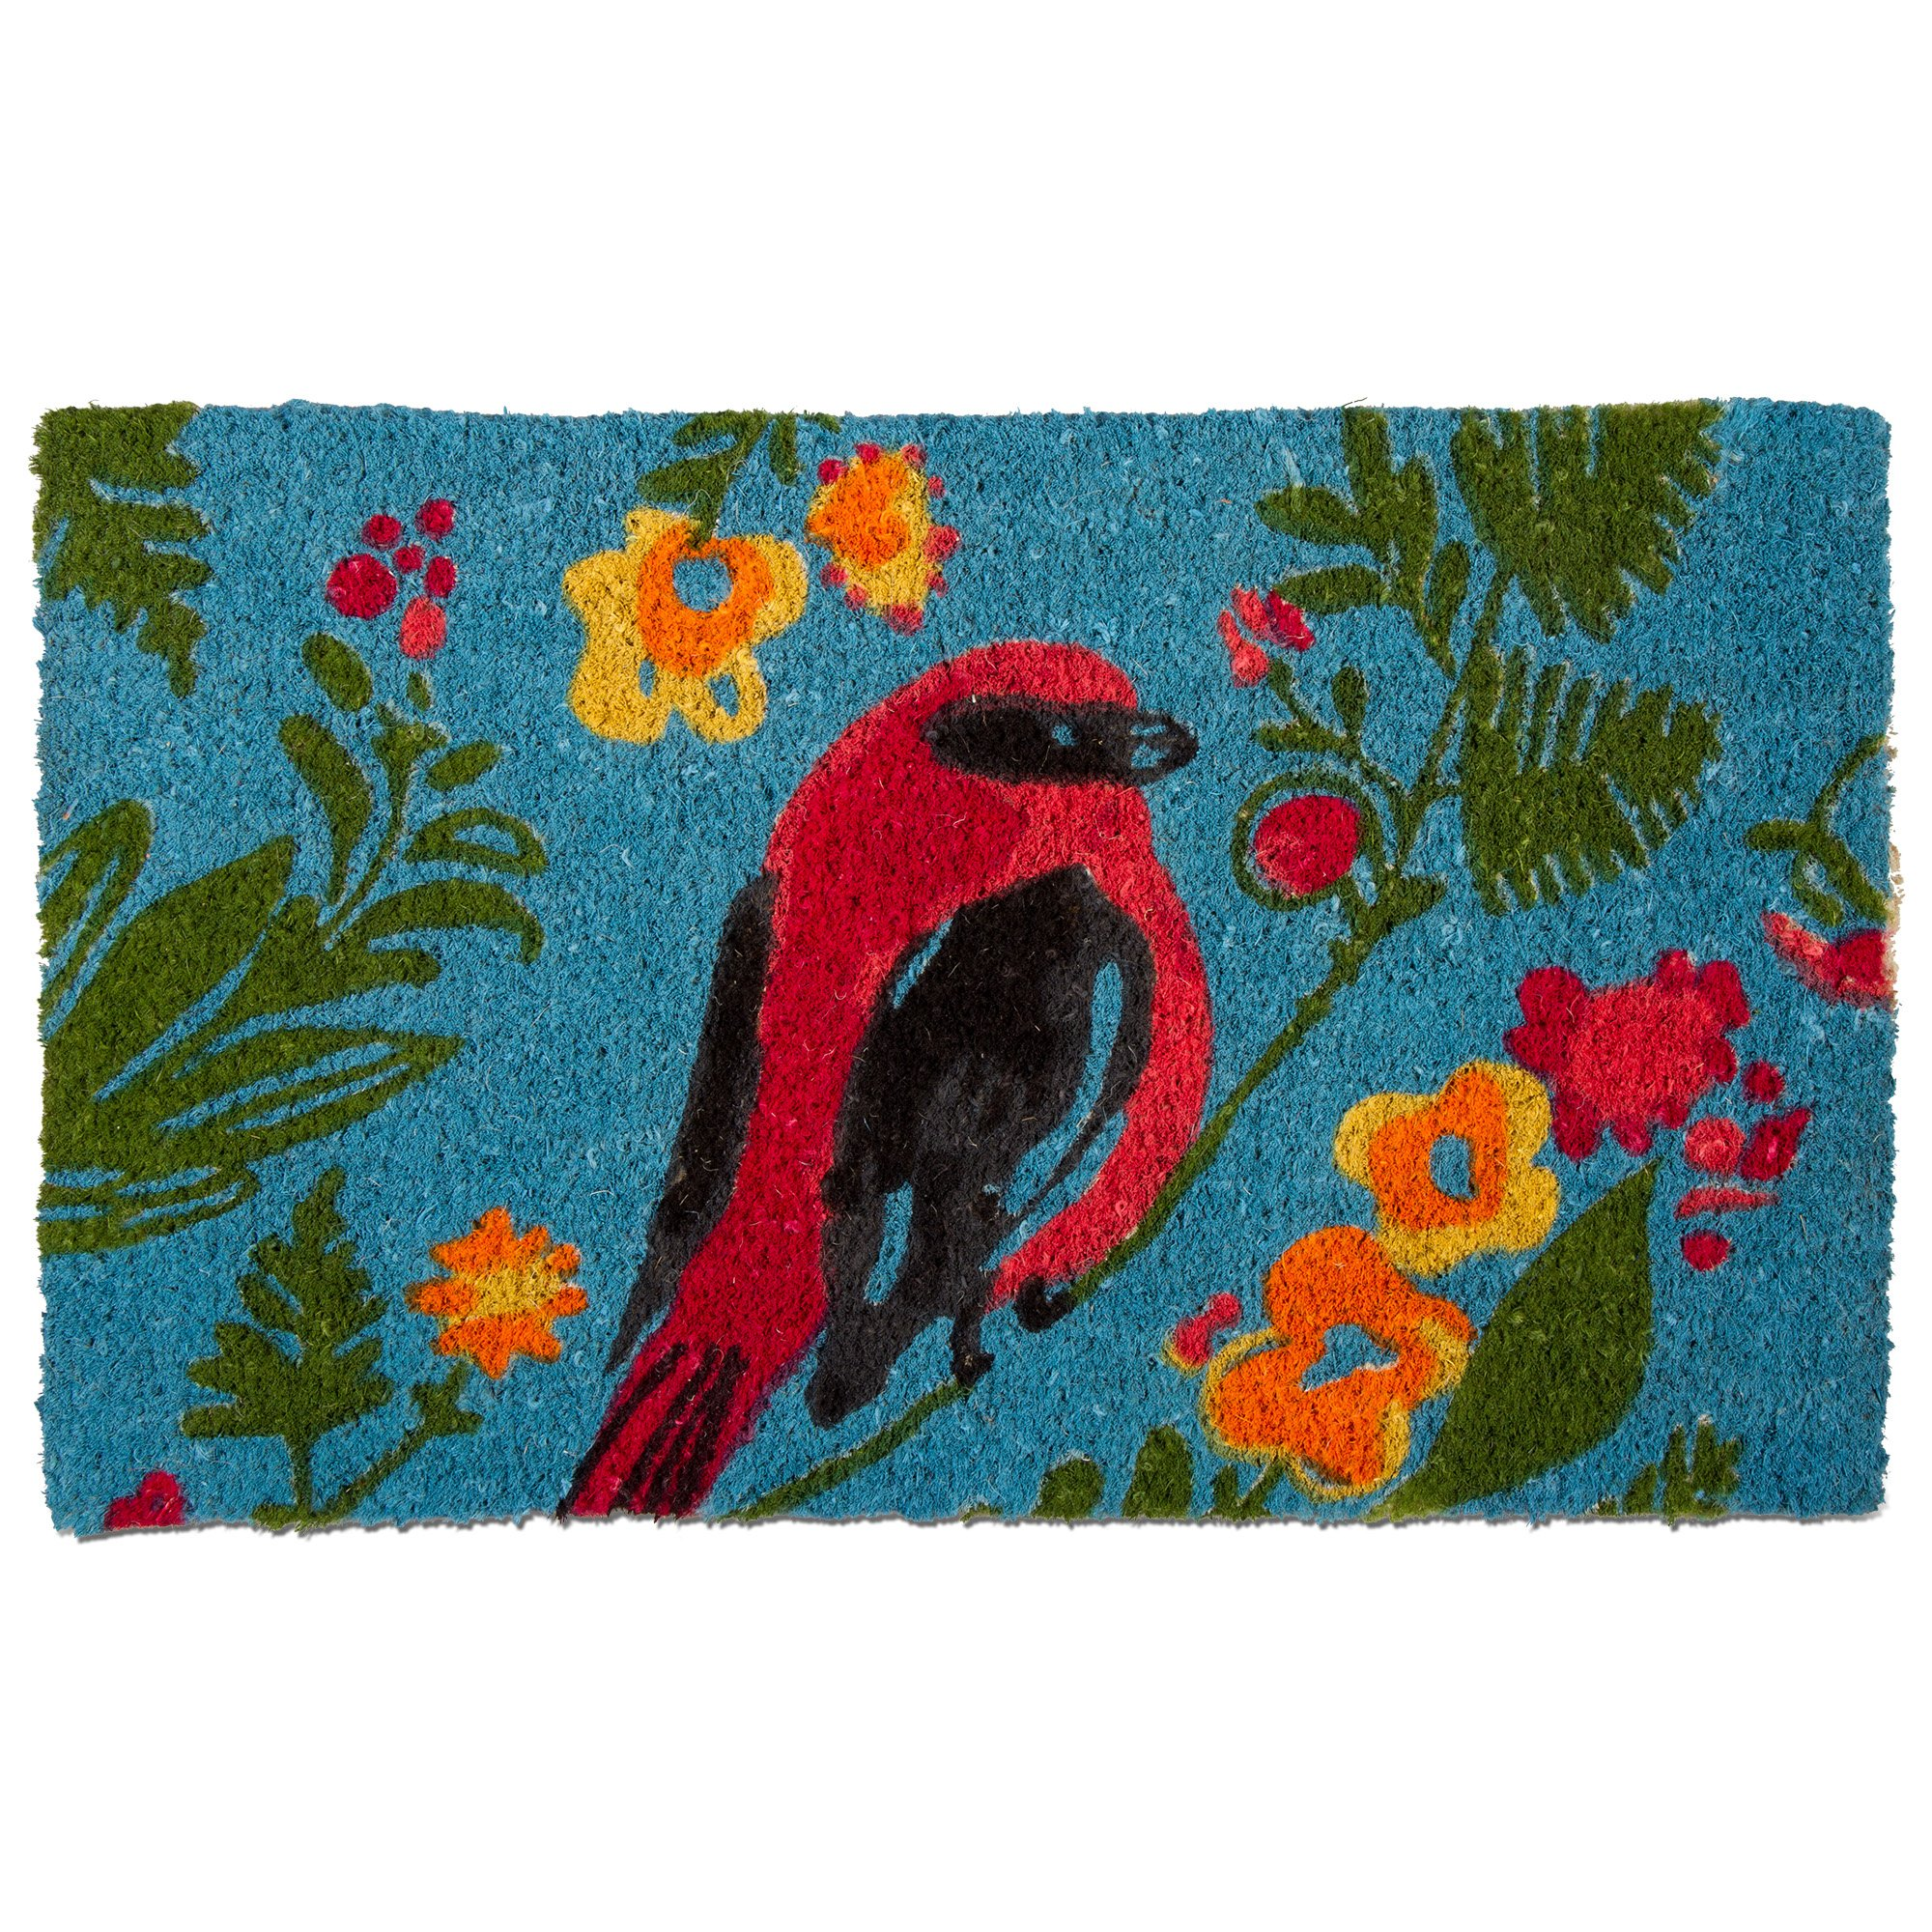 tag - Song Bird Coir Mat, Decorative All-Season Mat for the Front Porch, Patio or Entryway, Multi